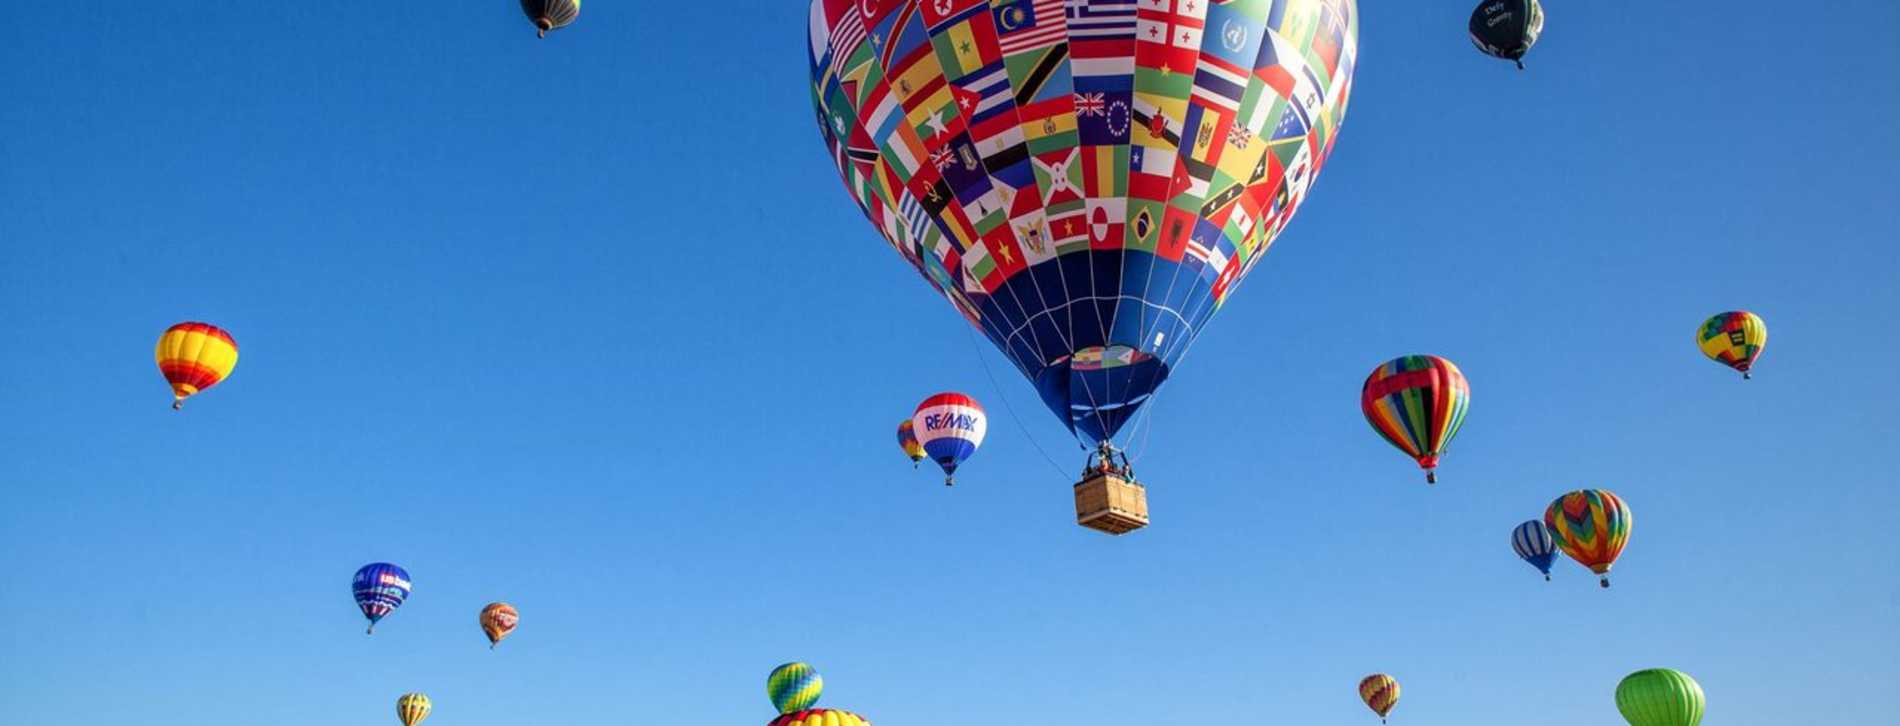 Magical Adventures Balloon Rides - Temecula